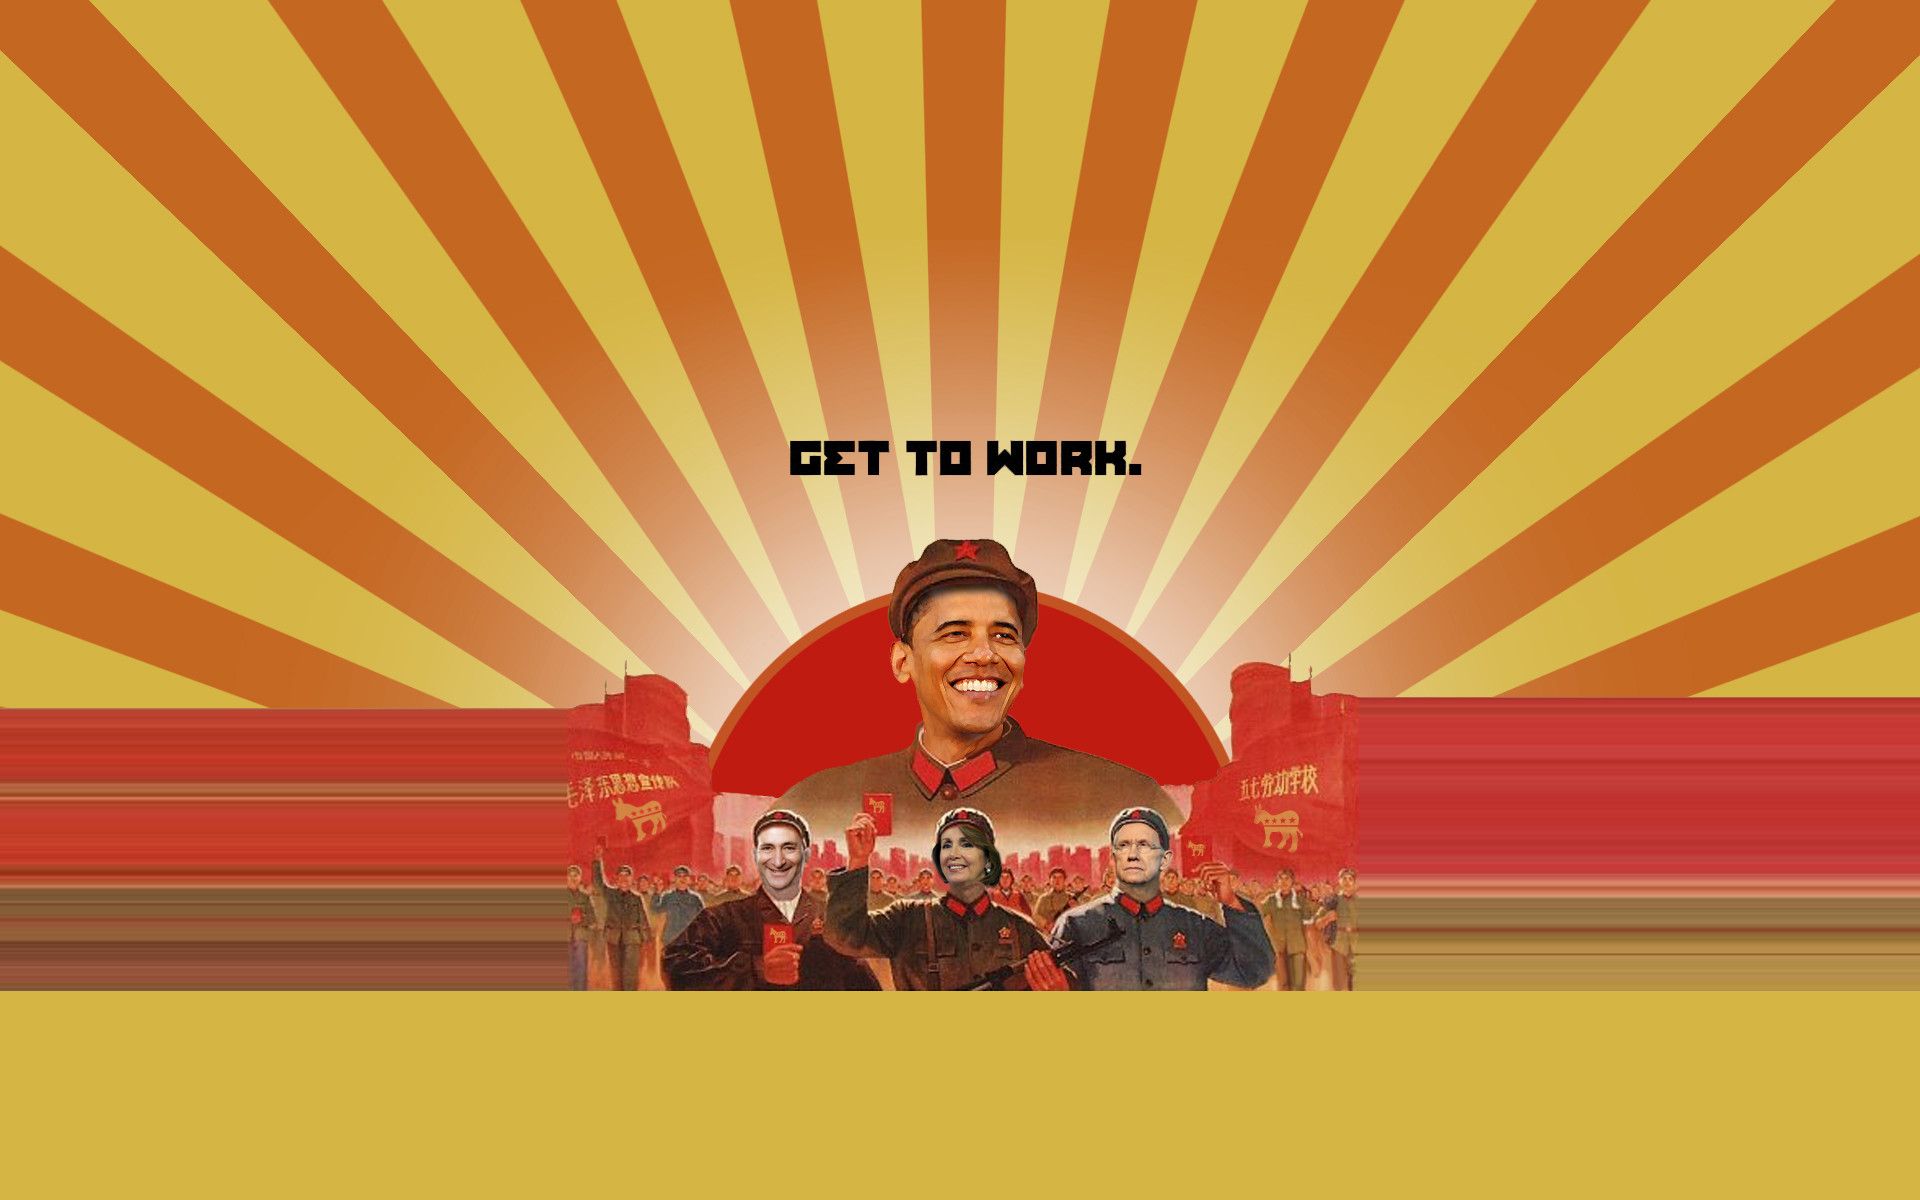 1920x1200 We build communism with Obama wallpapers and images - wallpapers, pictures,  photos